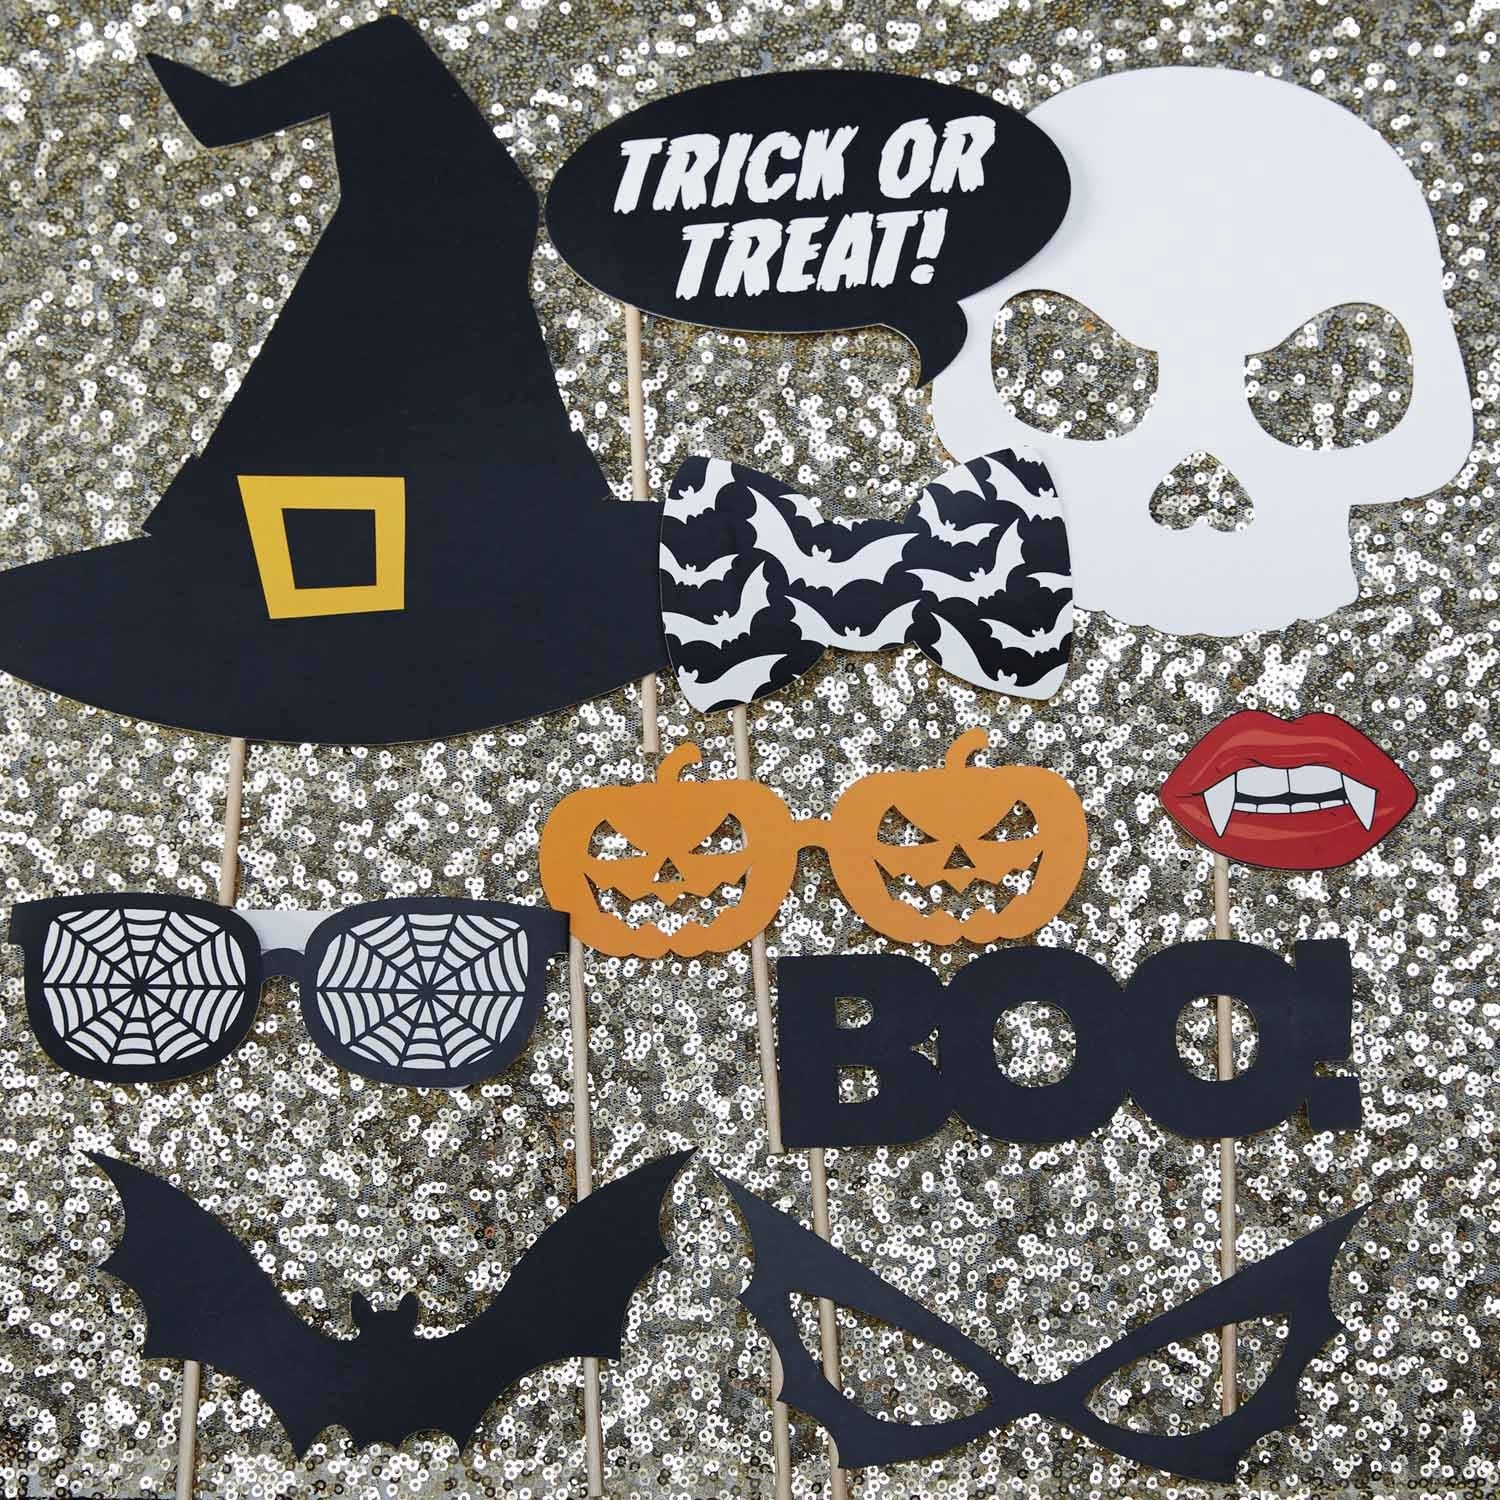 TRICK OR TREAT PHOTO BOOTH PROPS from Flingers Party World Bristol Harbourside who offer a huge range of fancy dress costumes and partyware items